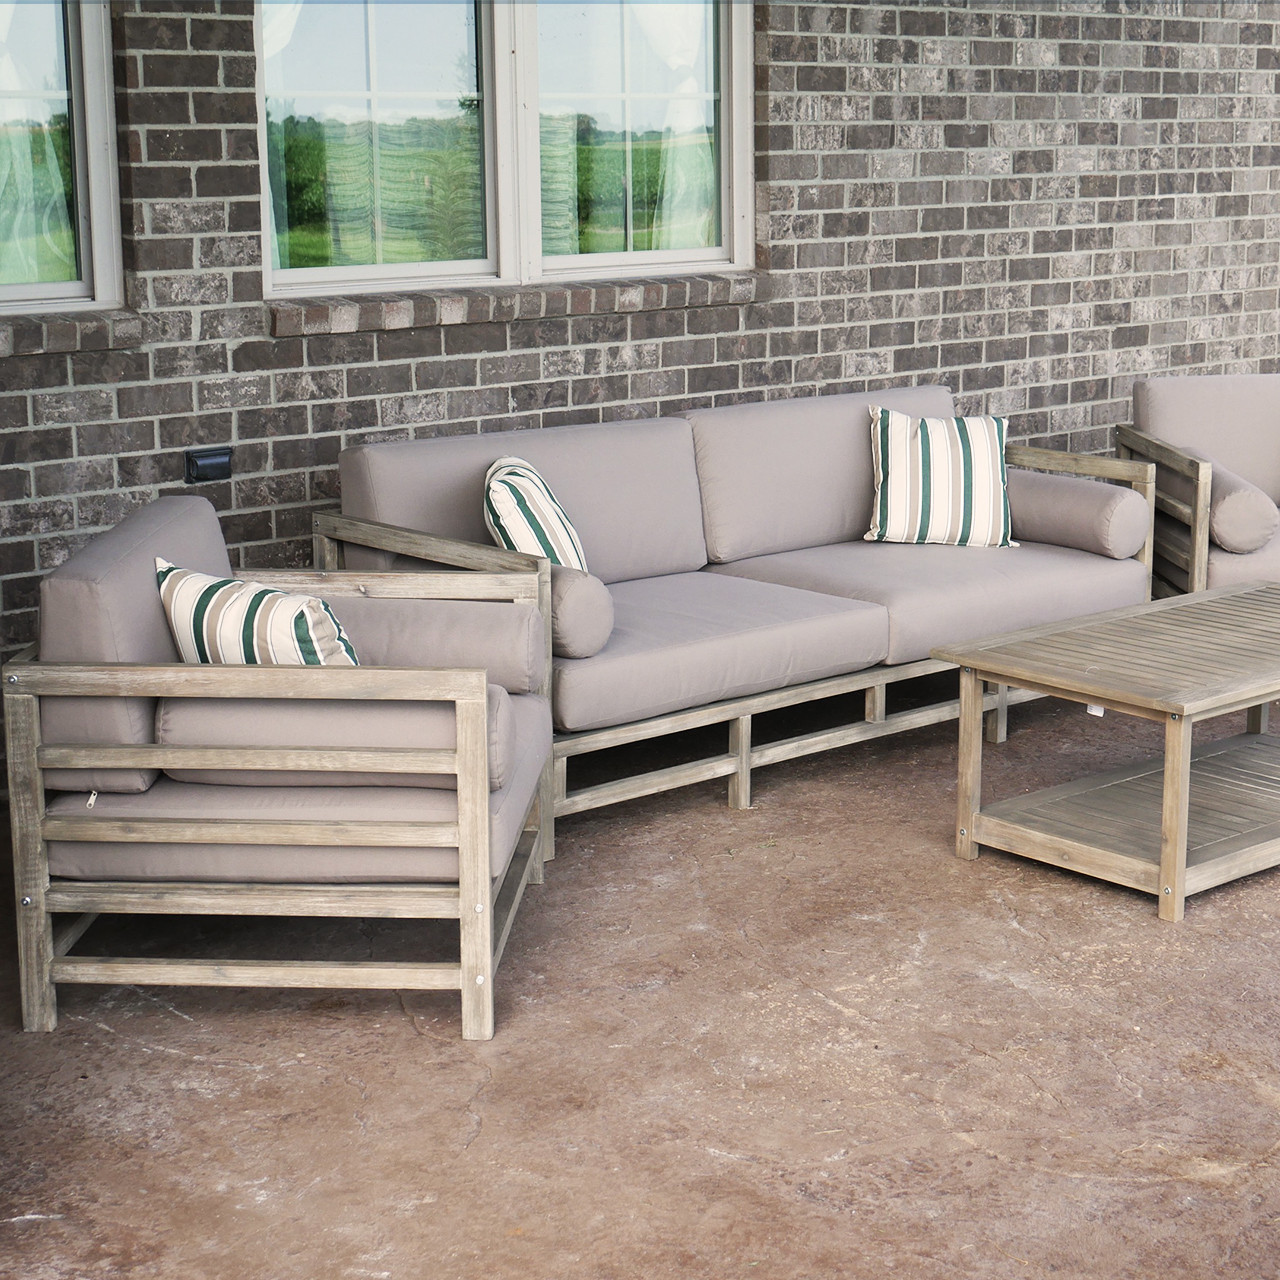 Etonnant Grand Haven Outdoor Patio Sofa Set With Table